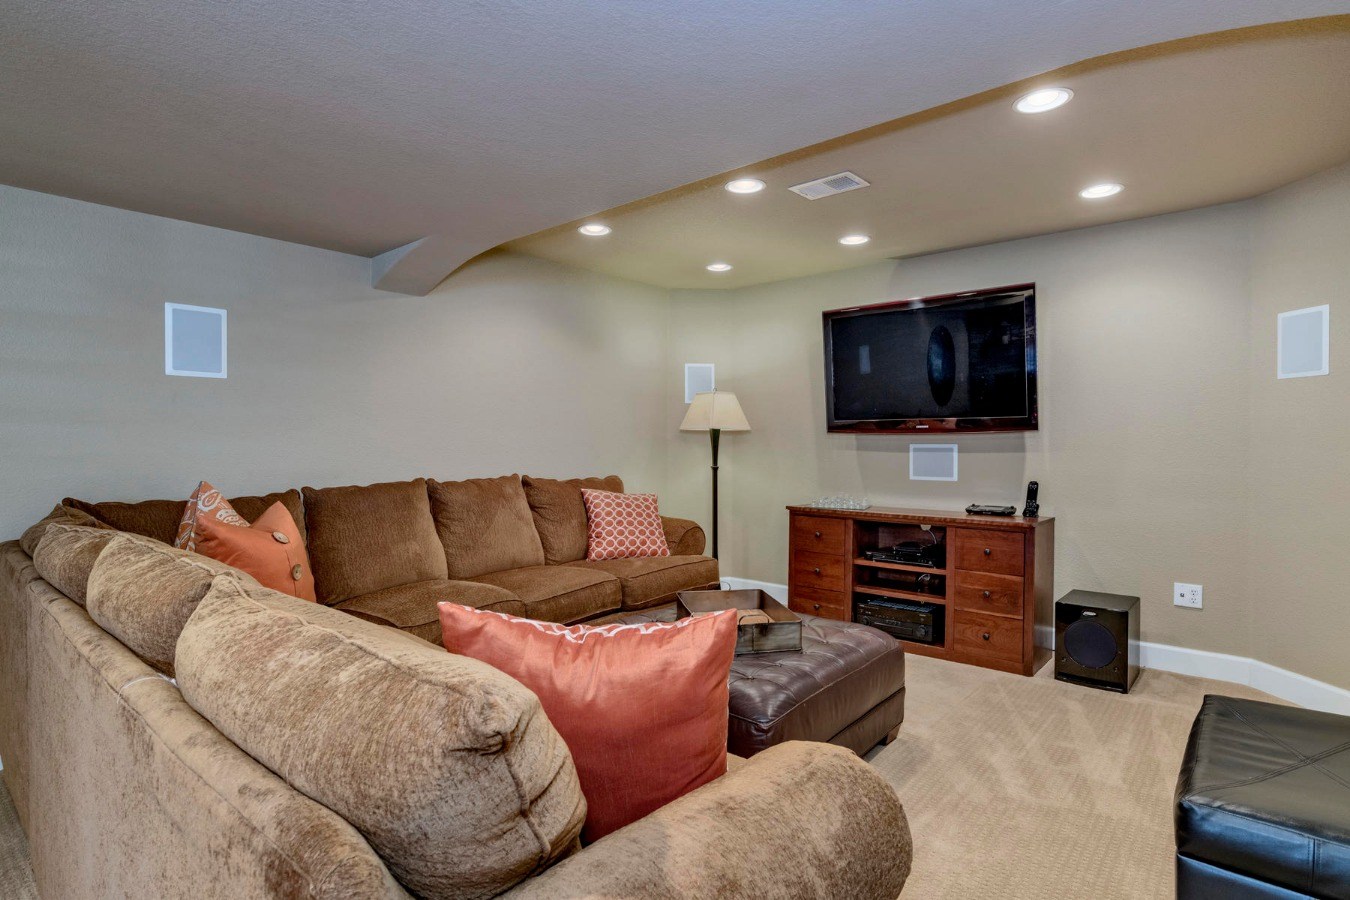 Home Theater Space with In-Wall Surround Speakers